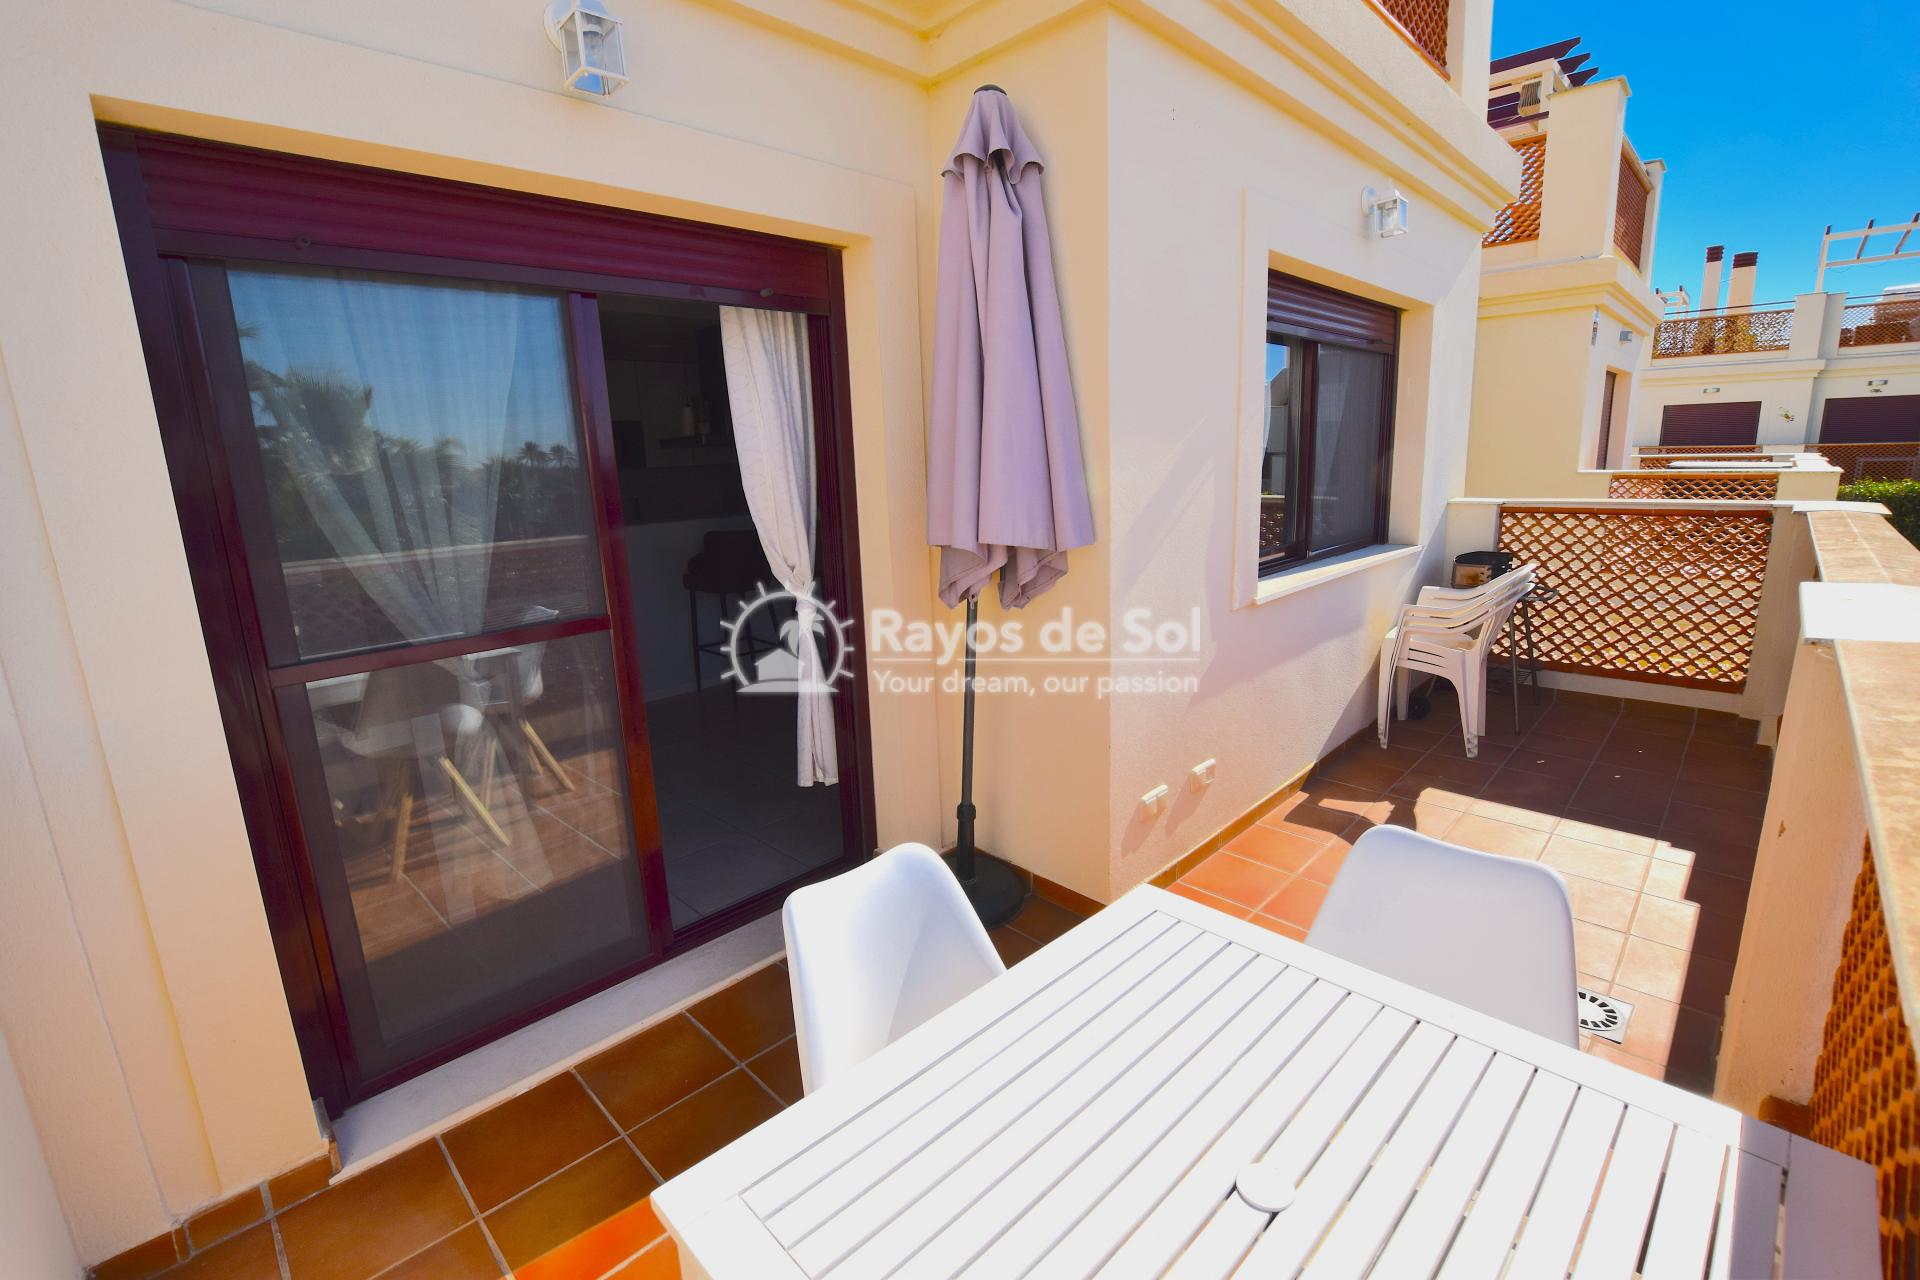 Penthouse with stunning views  in Los Alcazares, Costa Cálida (LARE0003) - 10